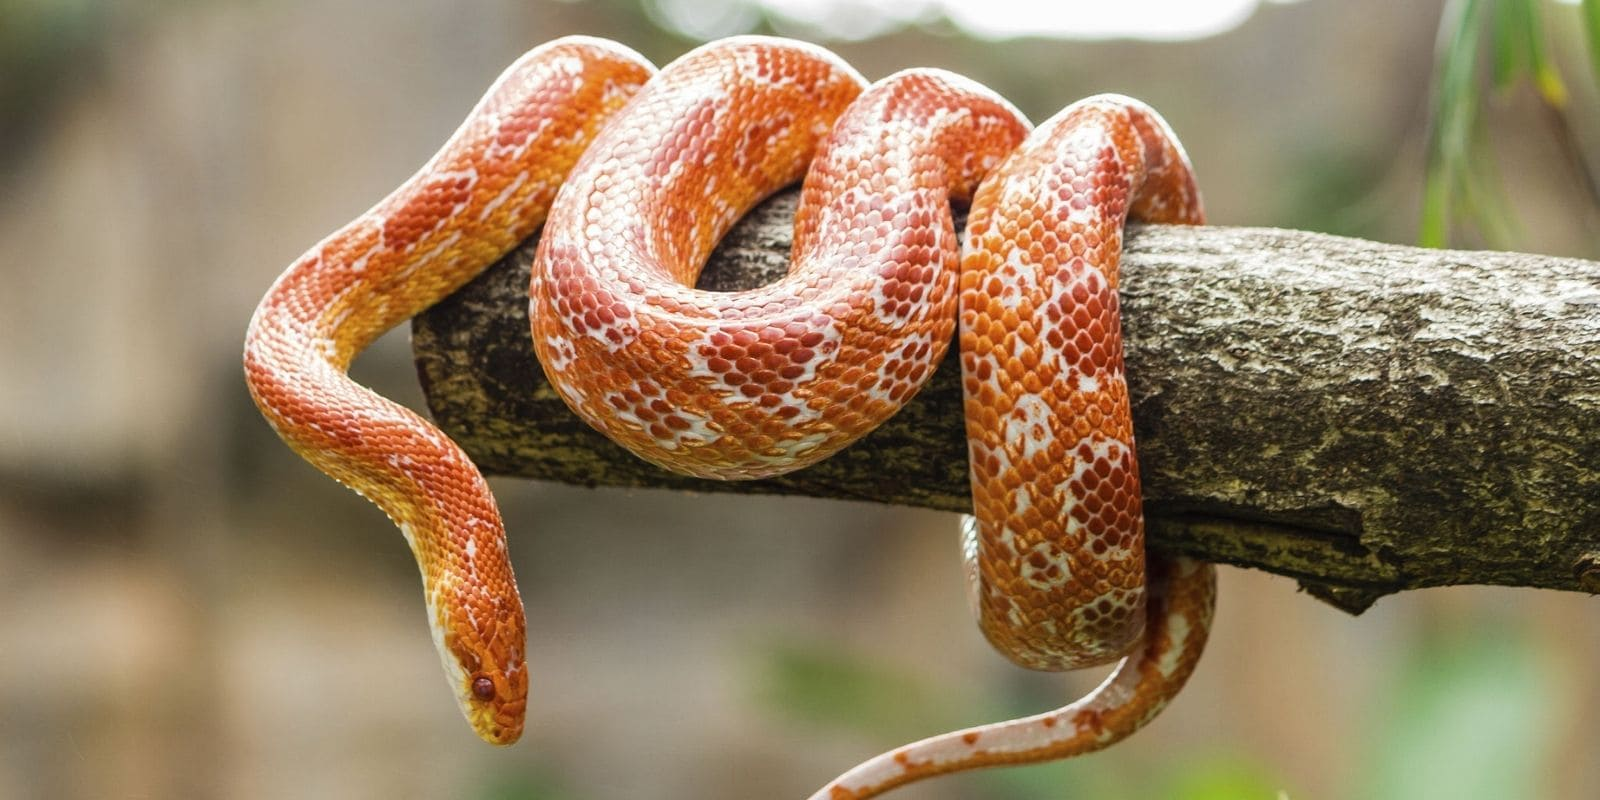 Orange and white snake on a tree branch